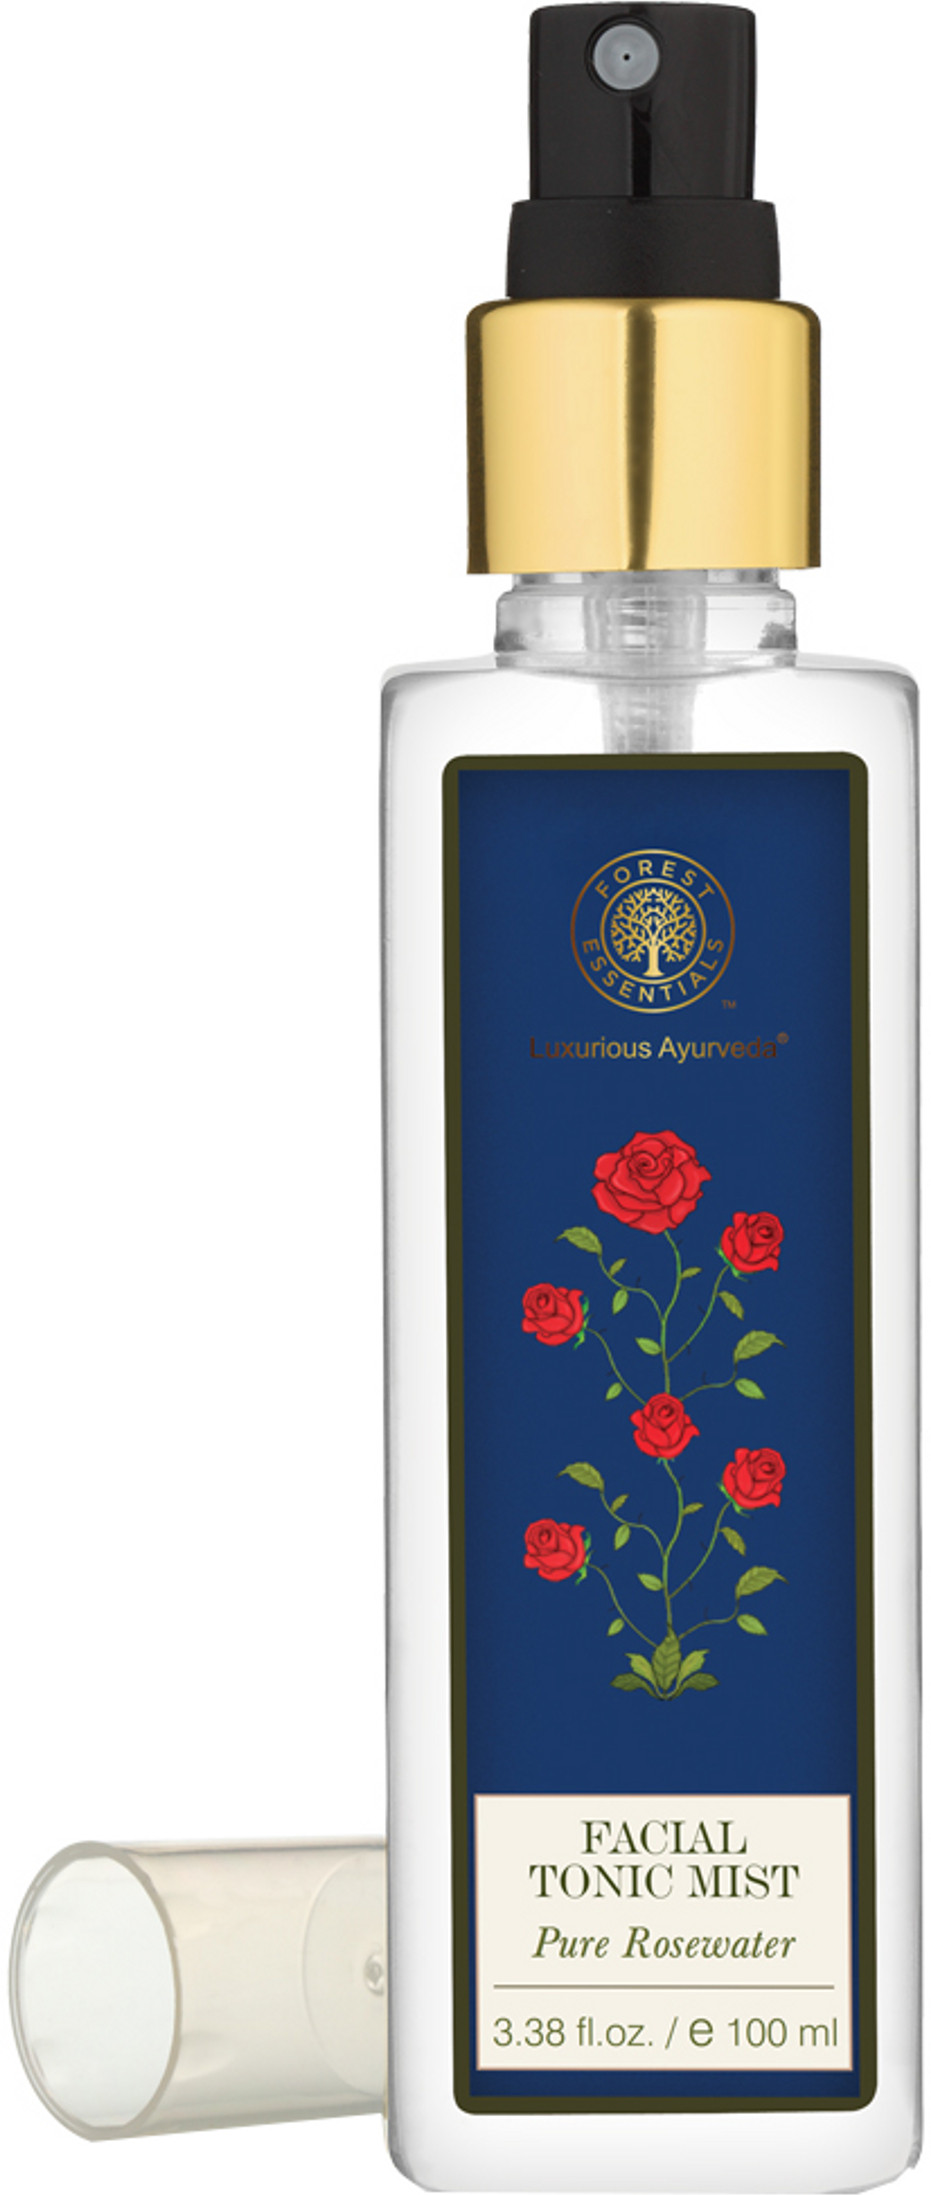 Buy Forest Essentials Facial Pure Rosewater Tonic Mist Online MY